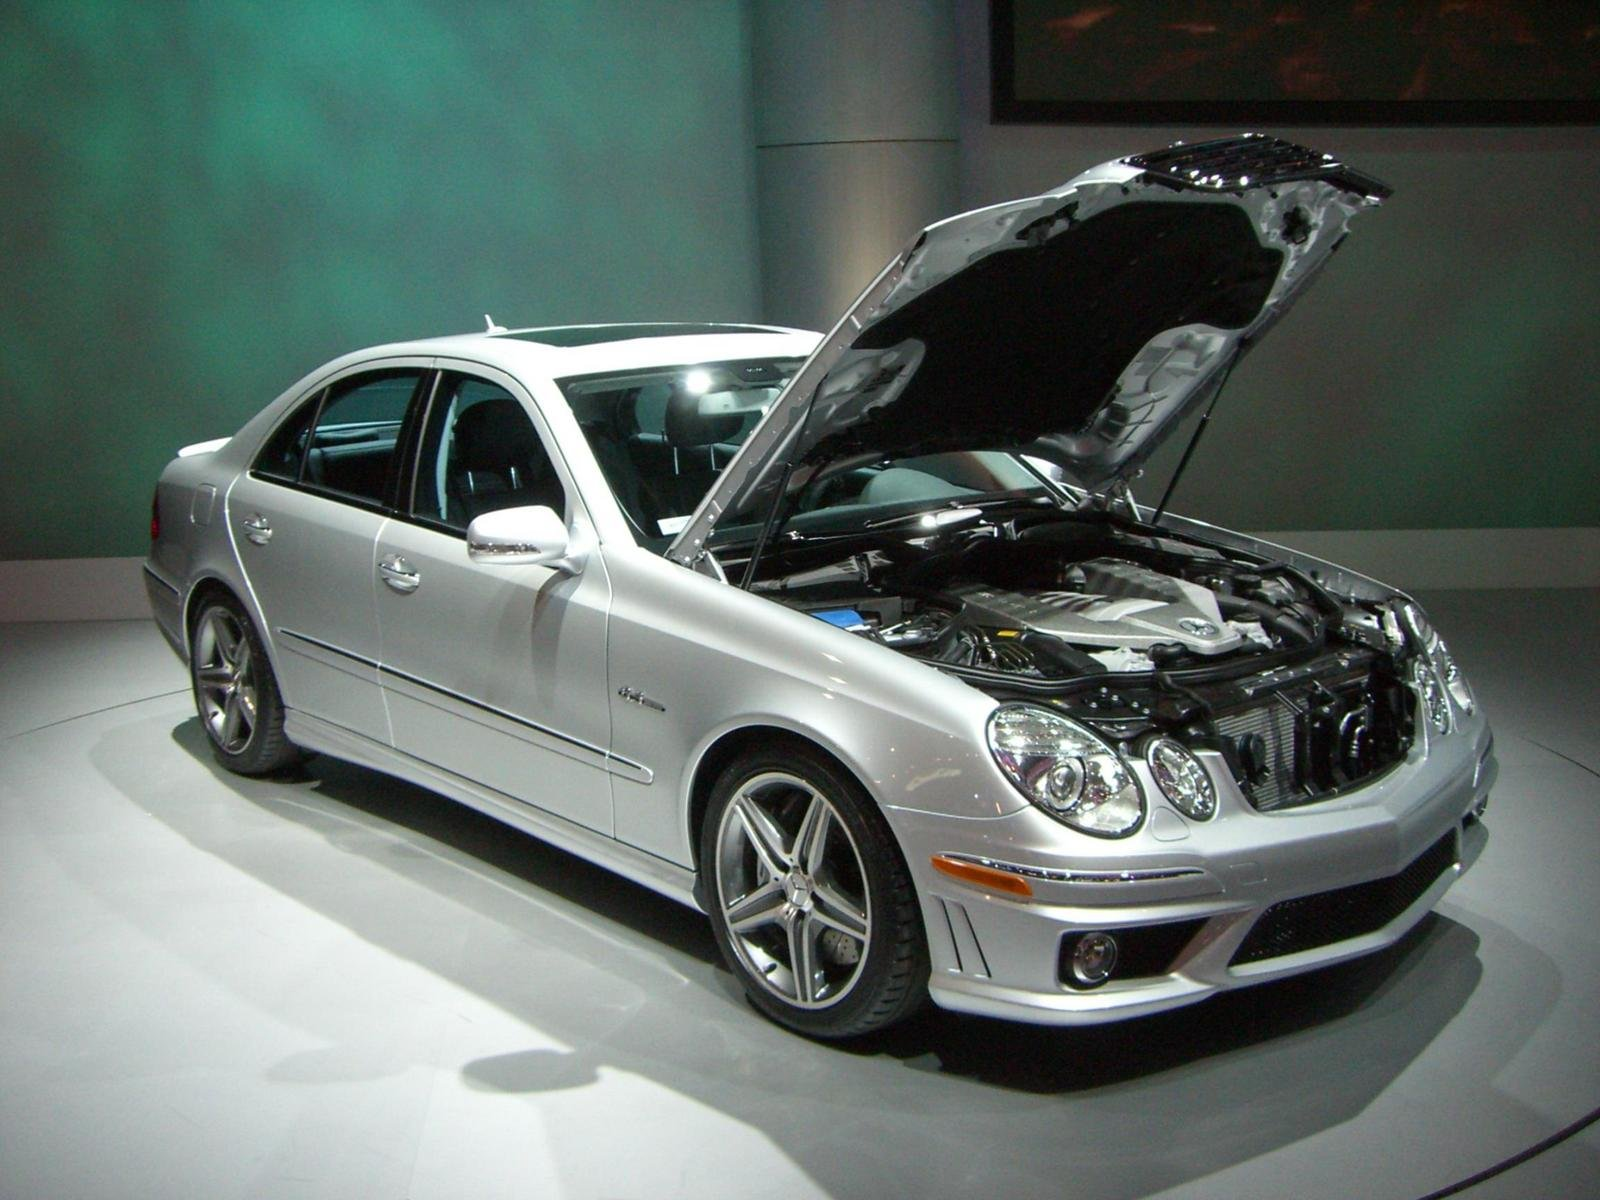 2007 mercedes benz e63 amg picture 53099 car review. Black Bedroom Furniture Sets. Home Design Ideas